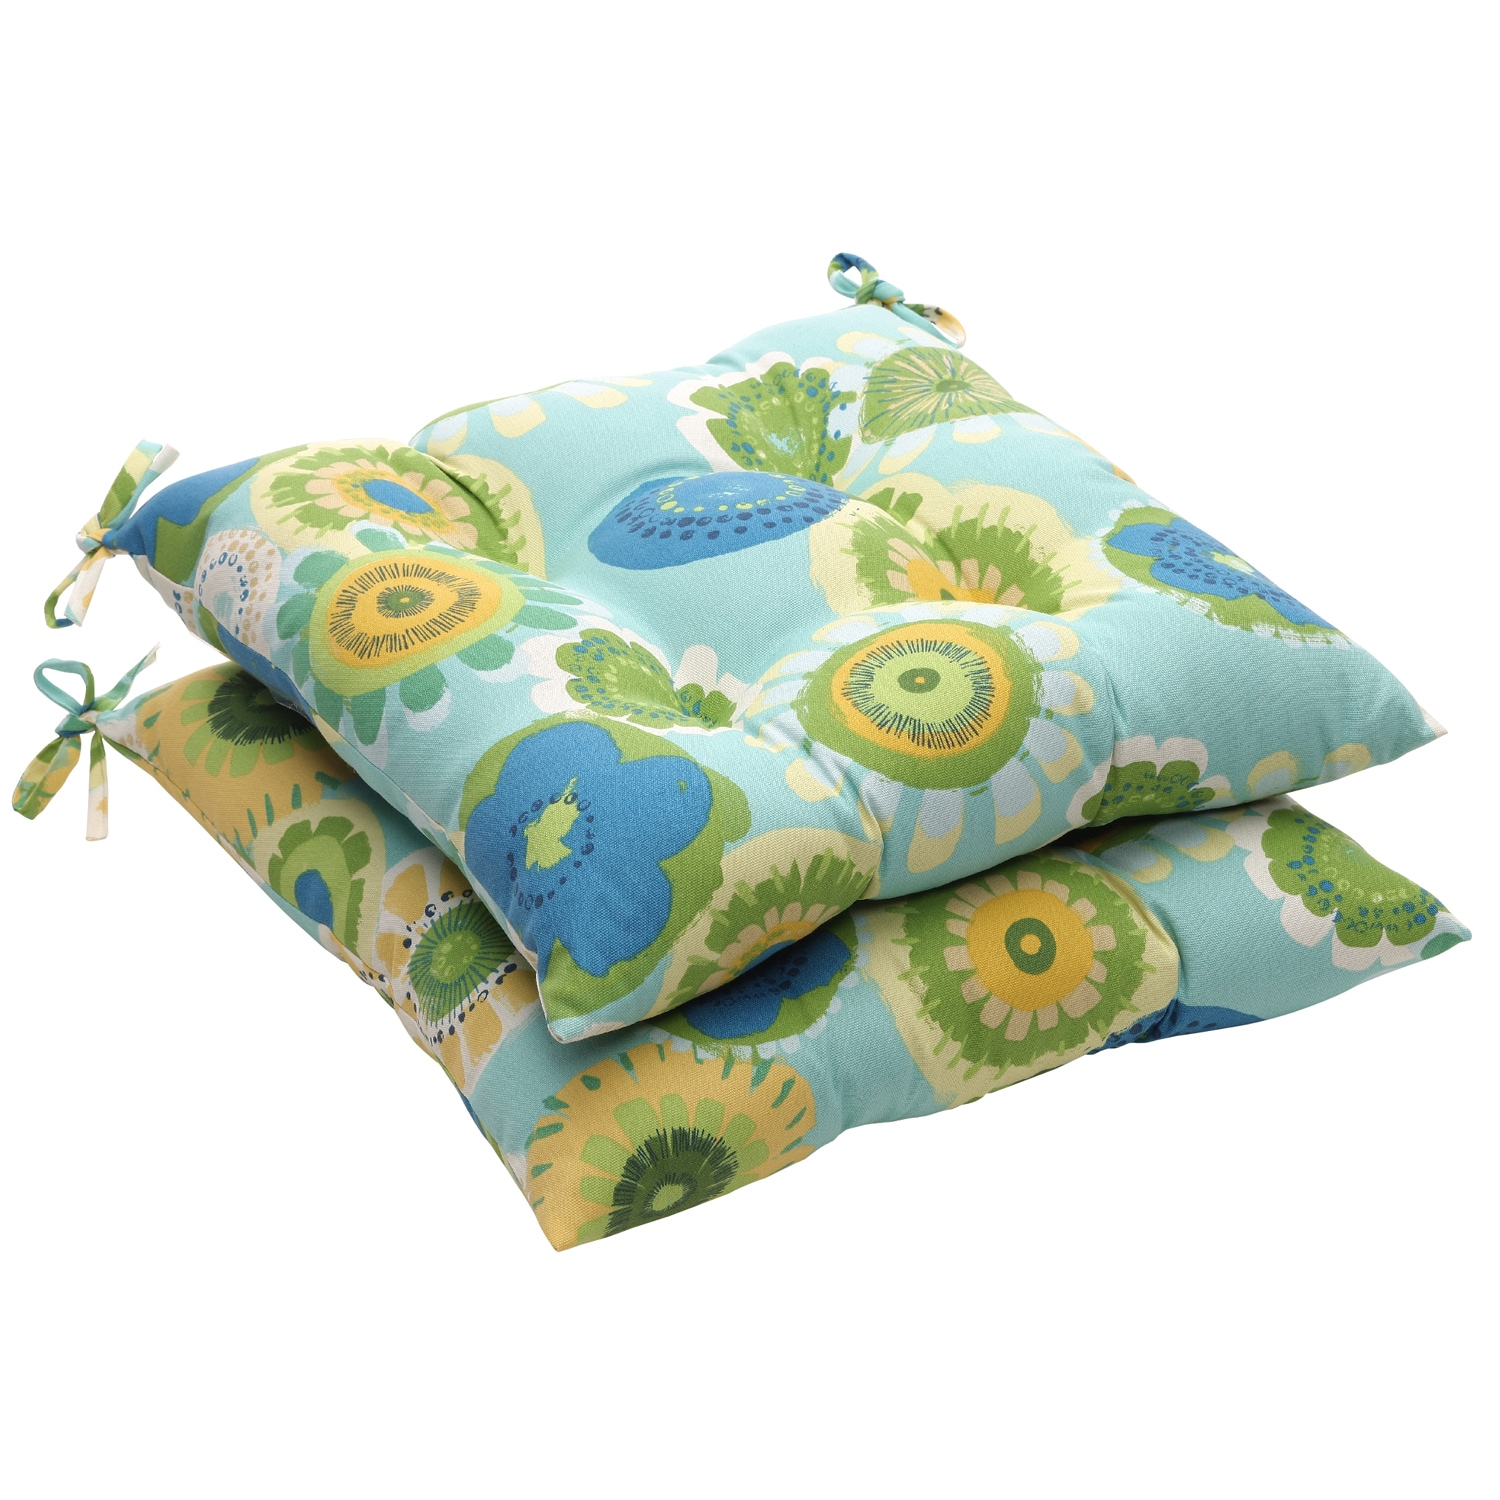 Blue/ Green Floral Outdoor Tufted Seat Cushions (Set of 2)